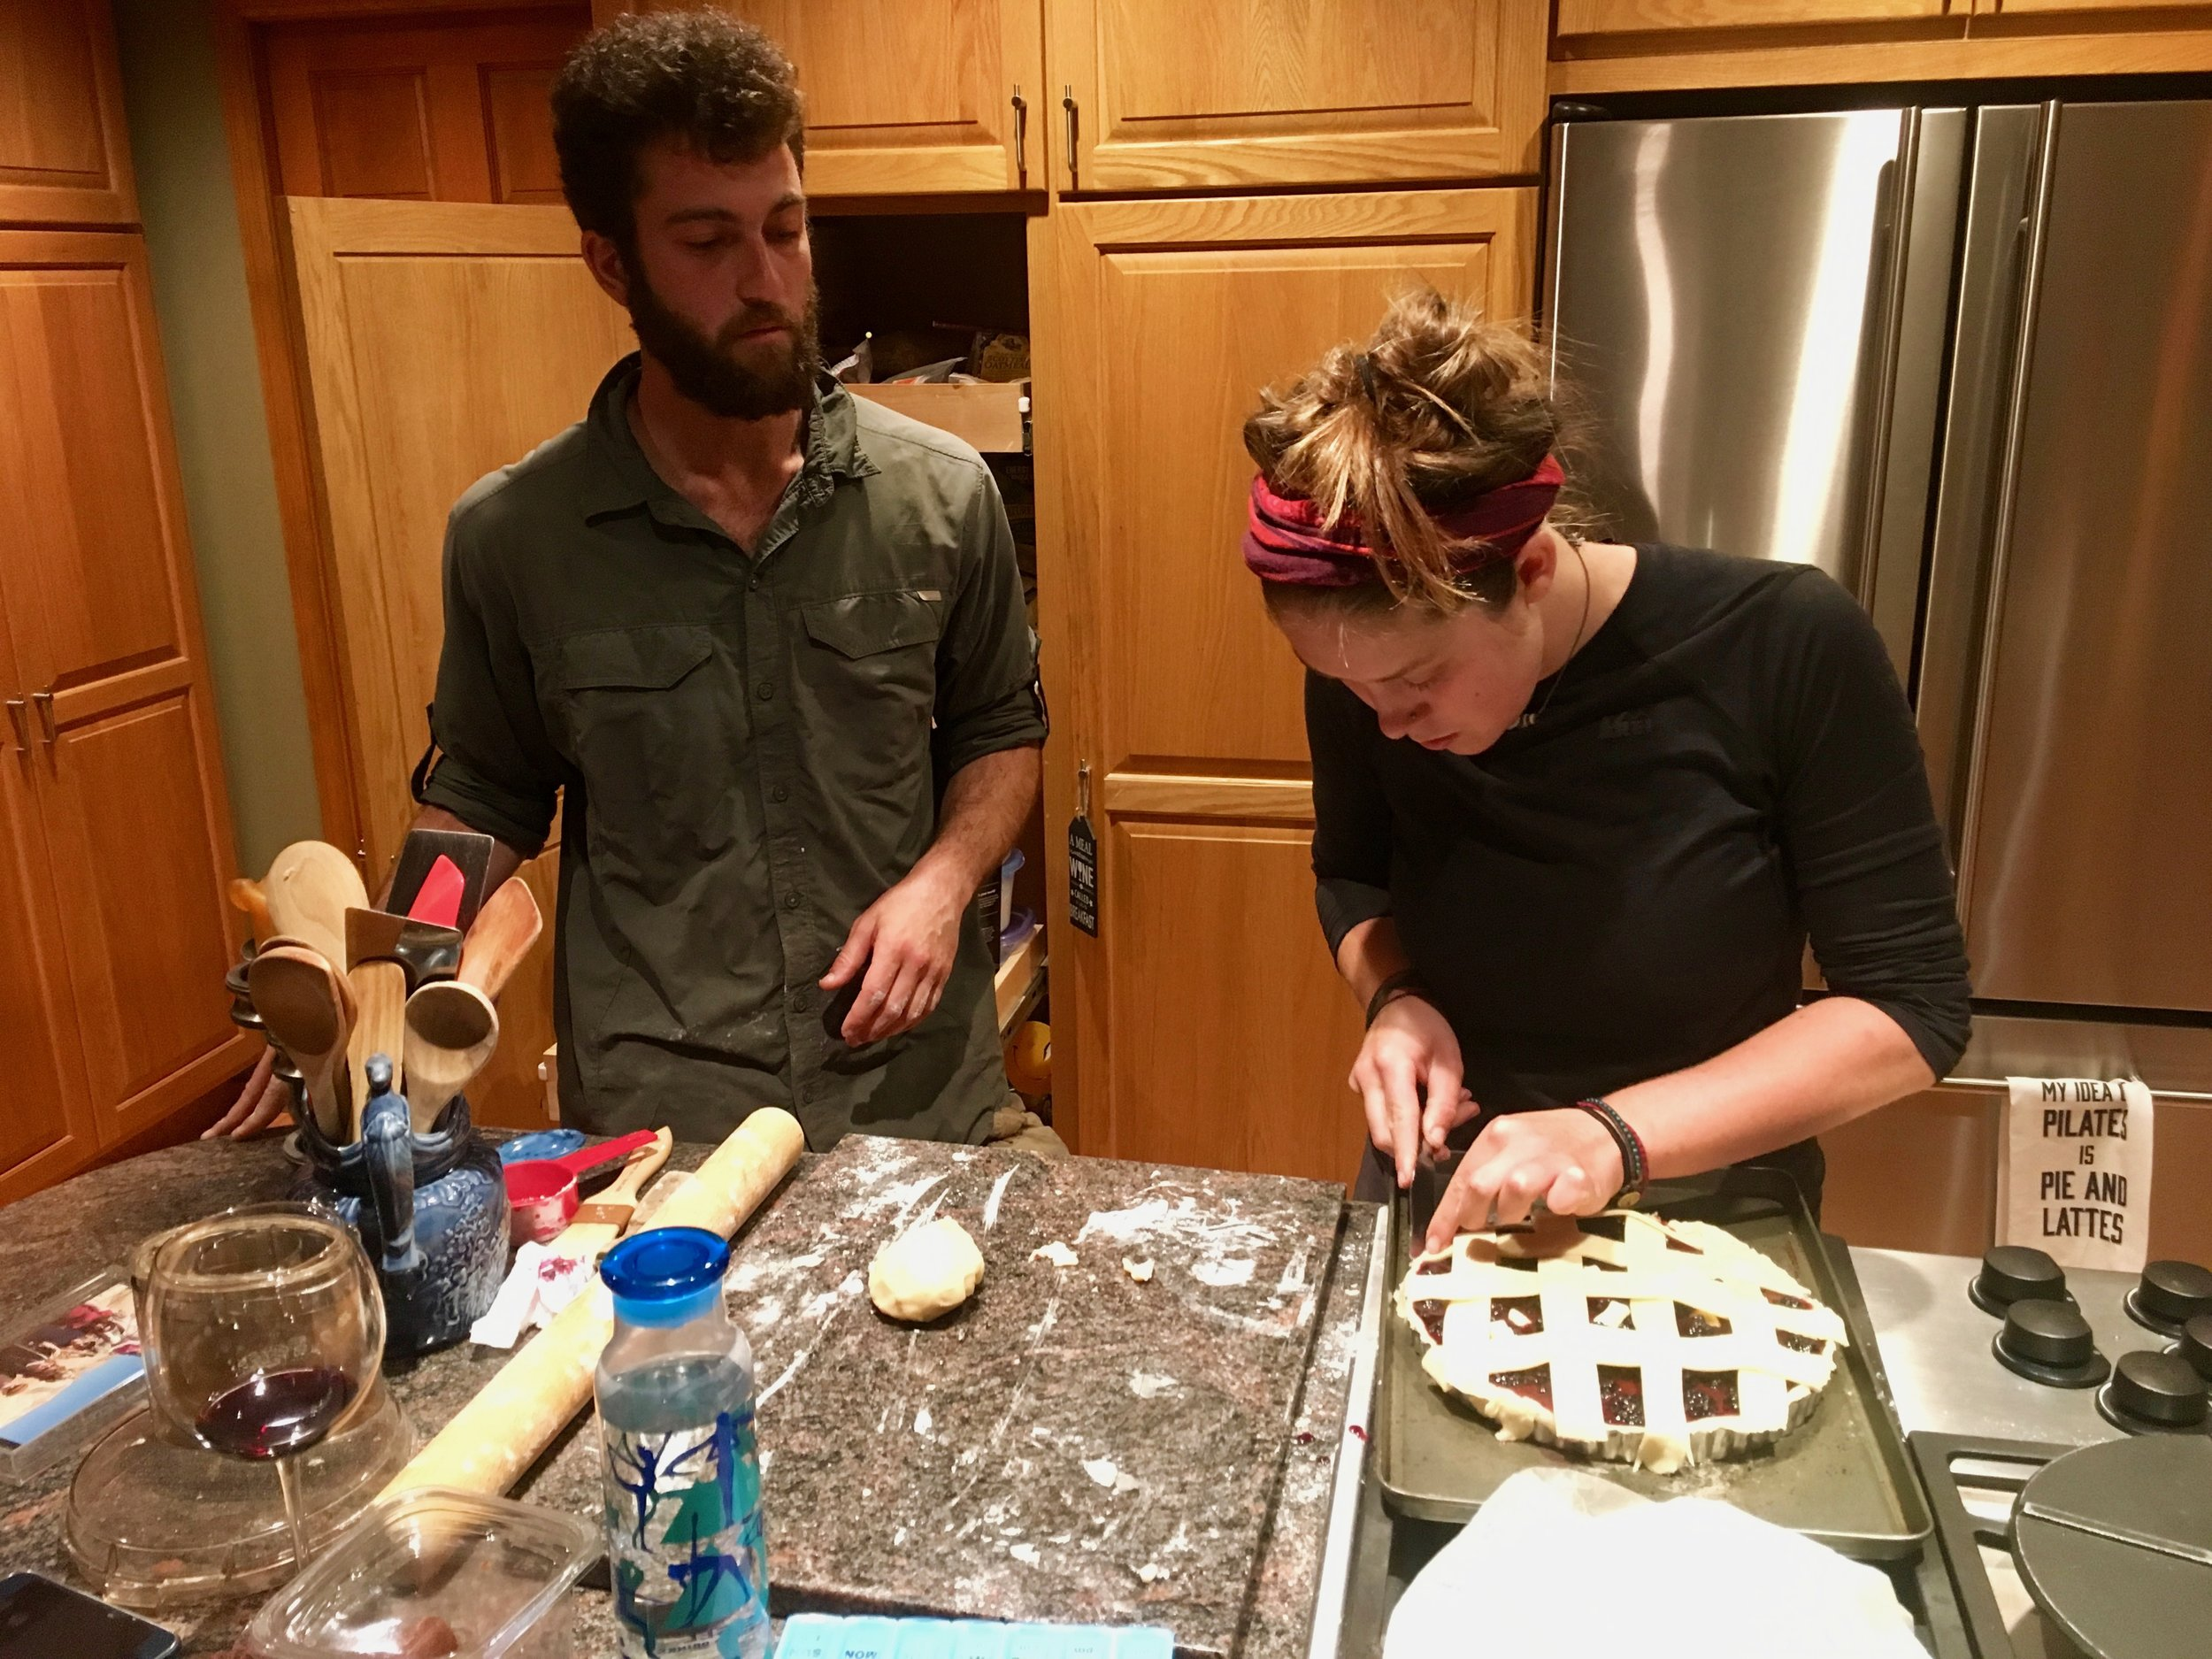 We liked to cook and bake whenever we had the opportunity in town. This is Indigo and Yoav baking a blackberry pie in Redmond, WA.